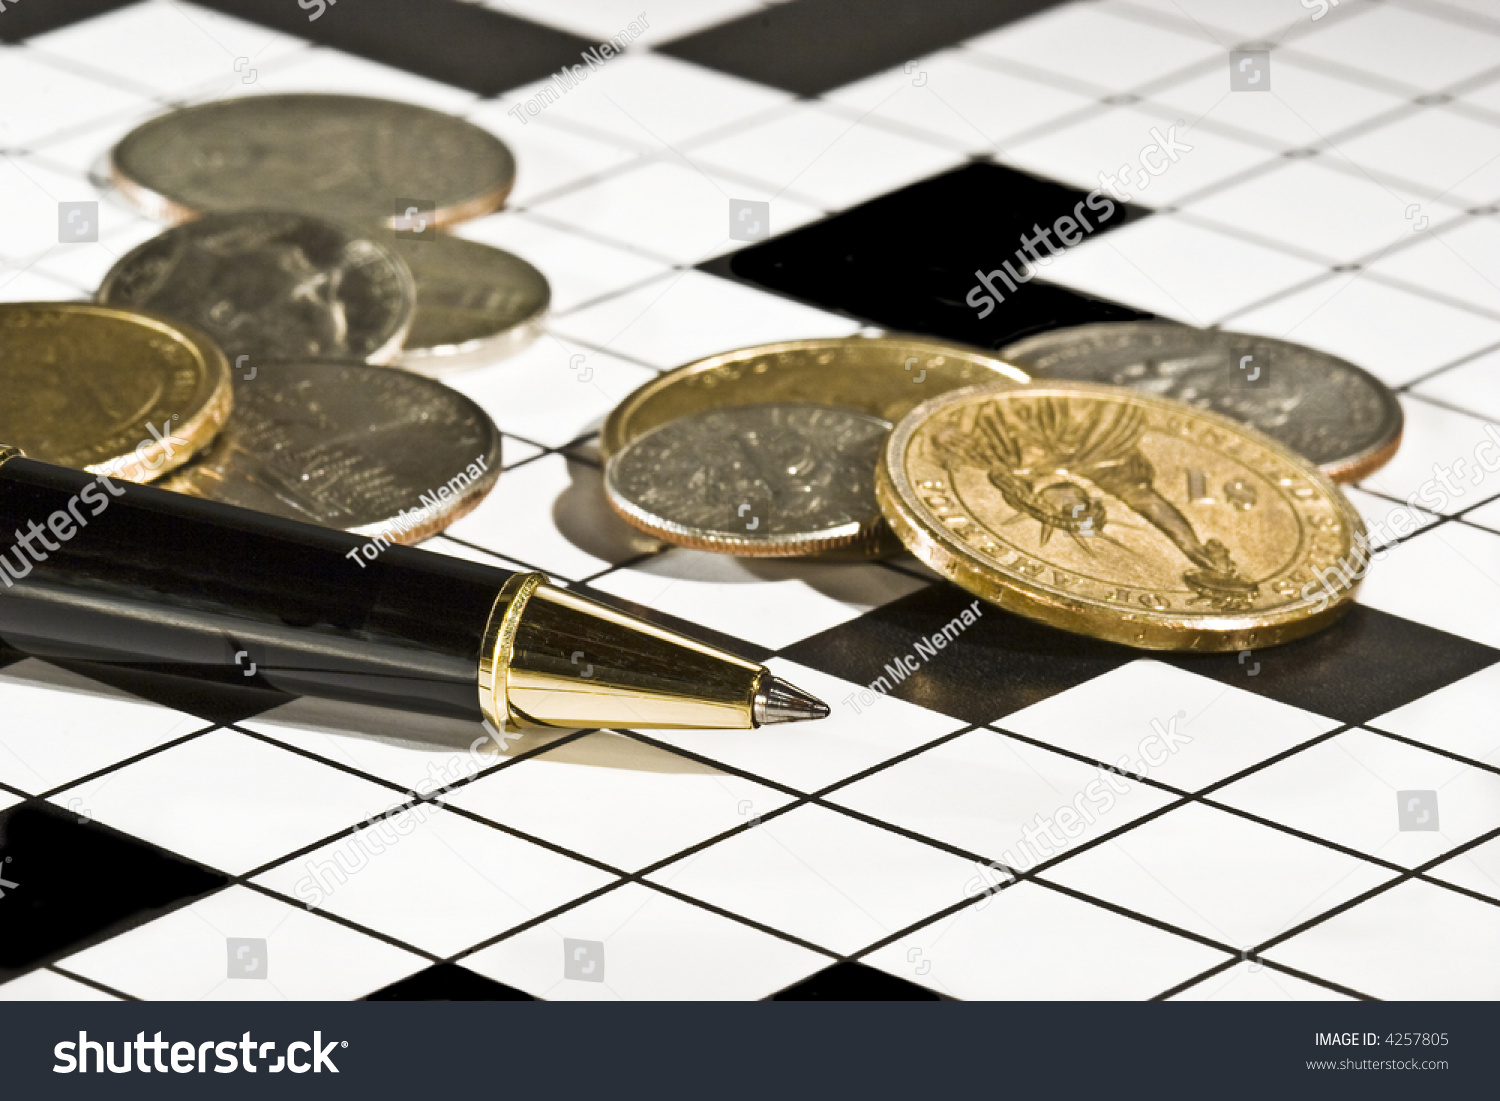 Executive S Ballpoint Pen And Coins On A Blank Crossword Puzzle Conceptual Image For Money